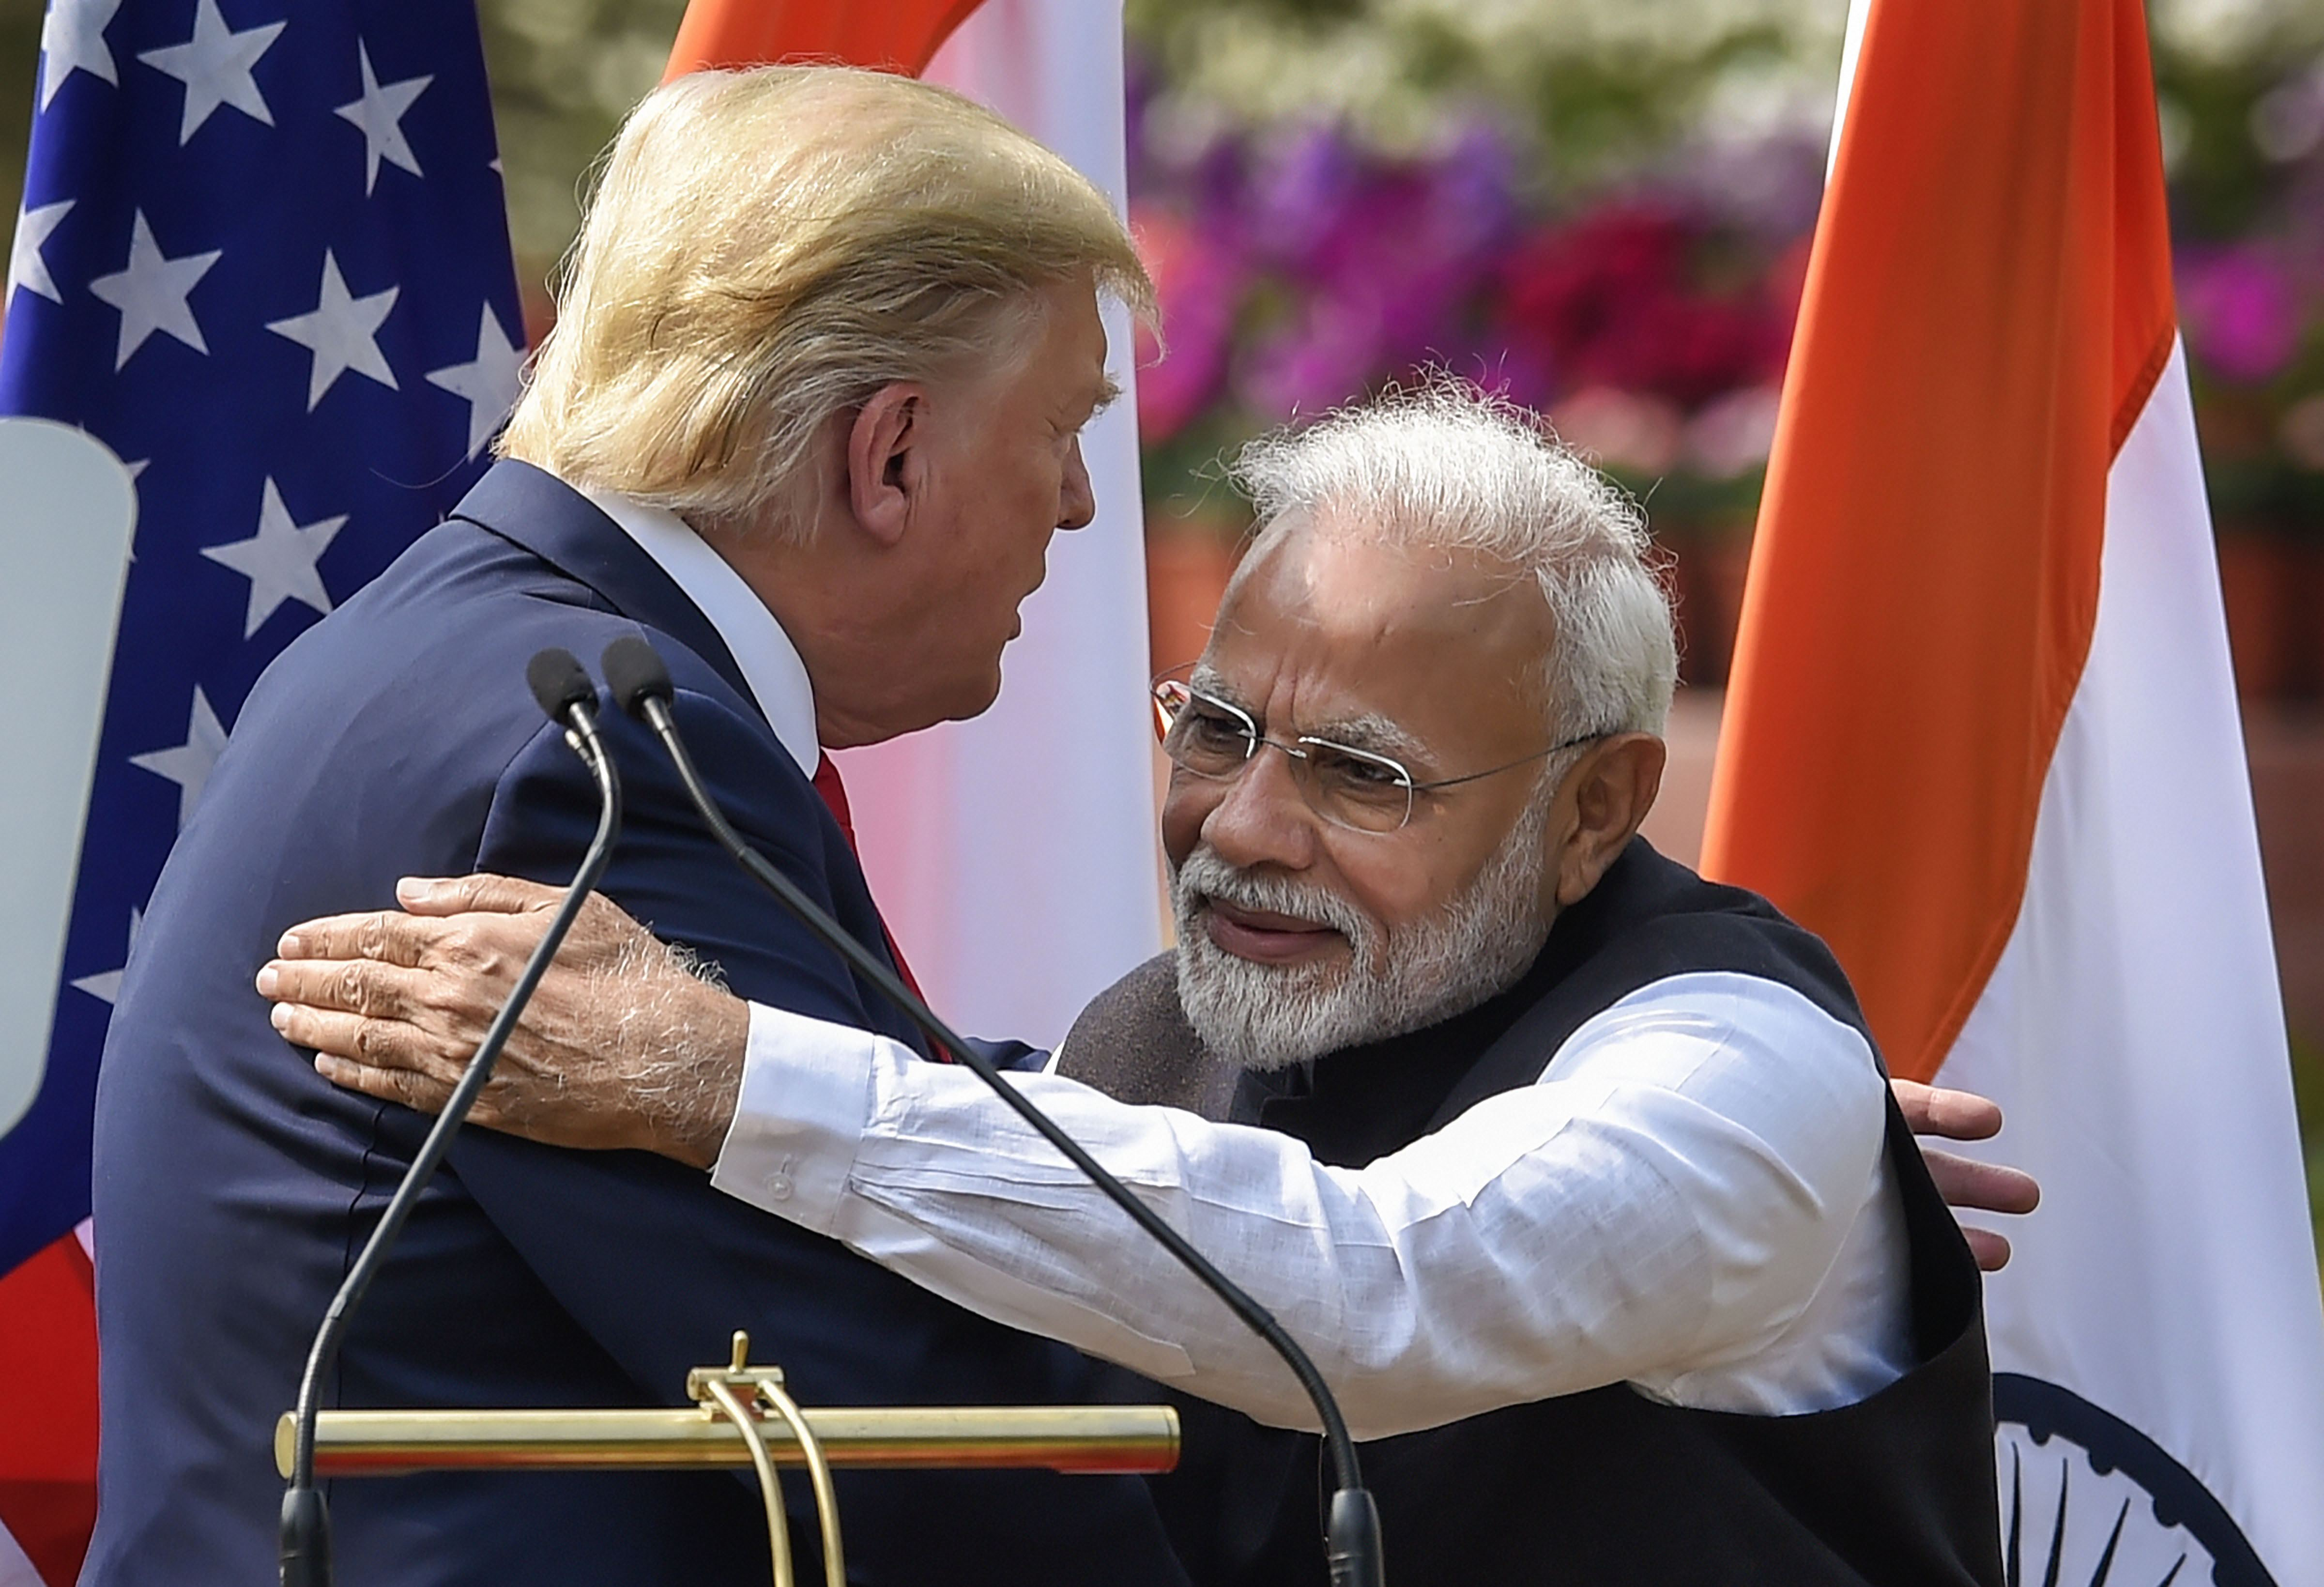 Prime Minister Narendra Modi (R) and US President Donald Trump hug each others after their joint press statement, at the Hyderabad House in New Delhi, Tuesday, February 25, 2020